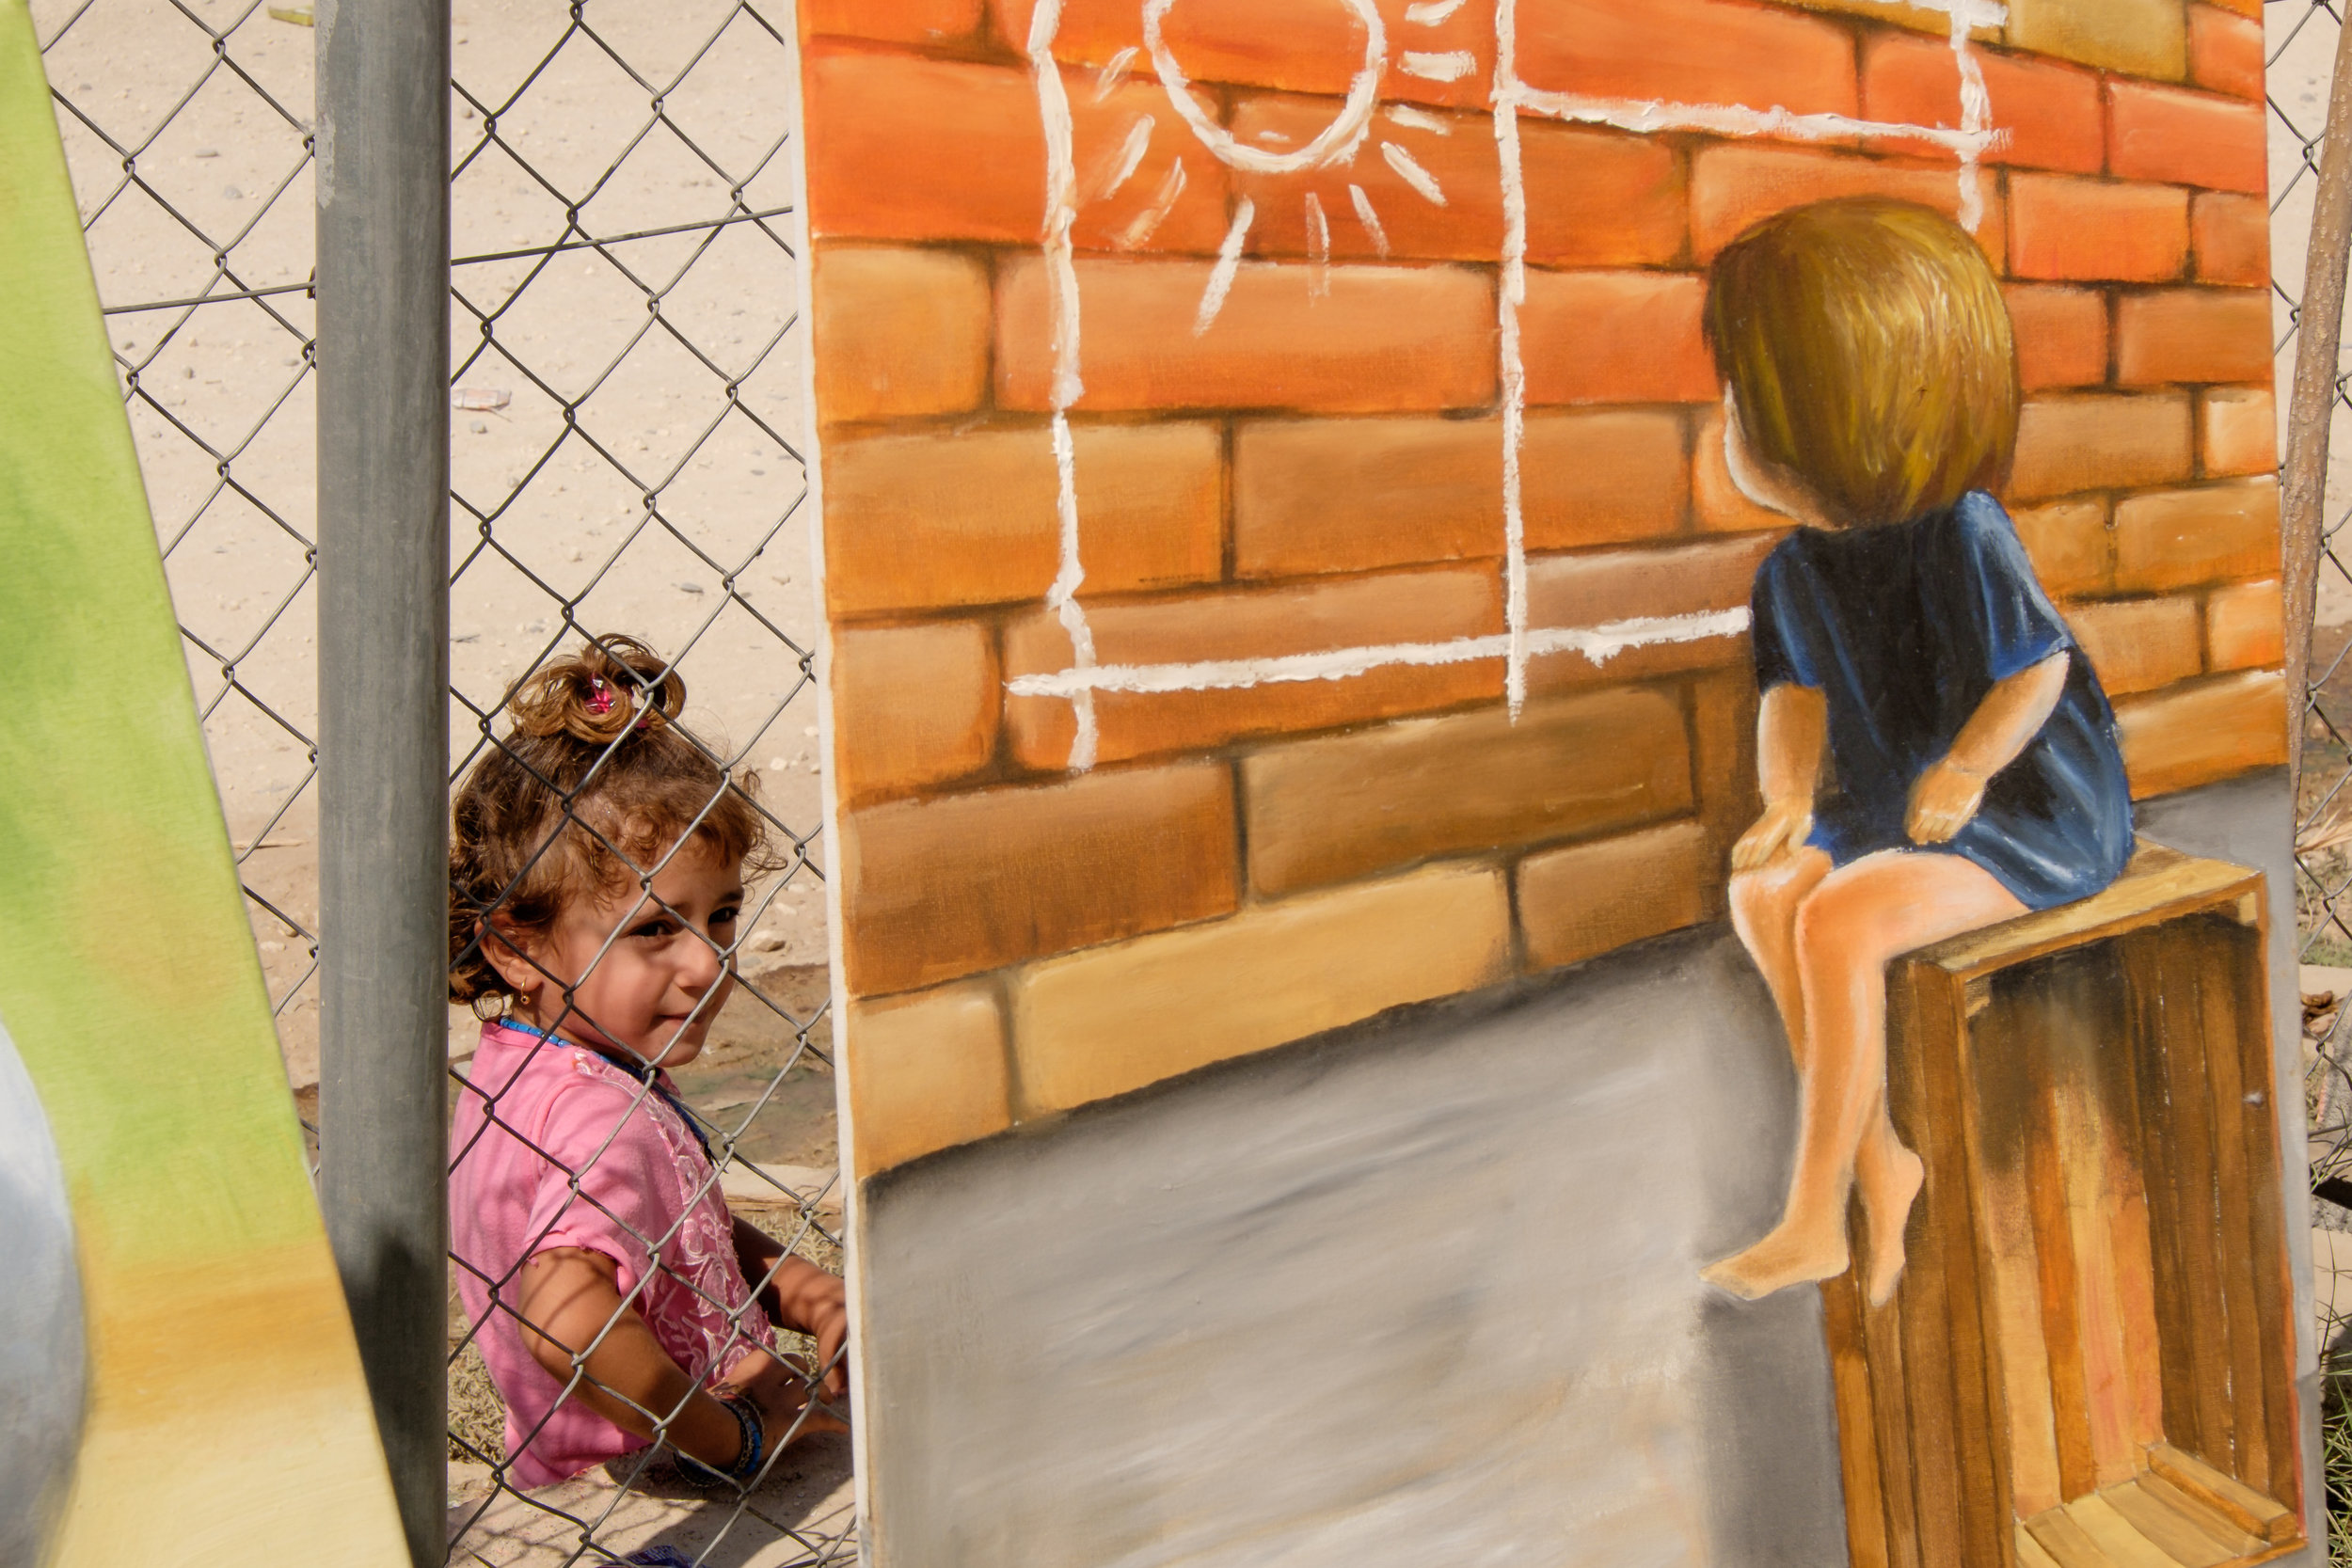 Kurdistan Region of Iraq. IDP Camp Kabarto II. A young girl watches the exhibition of Artist Saad Abduhamid Khalil from the outside. Khalil´s pictures were exhibited in the context of a chess tournament between to IDP-Camps, conducted by local NGO Harikar.